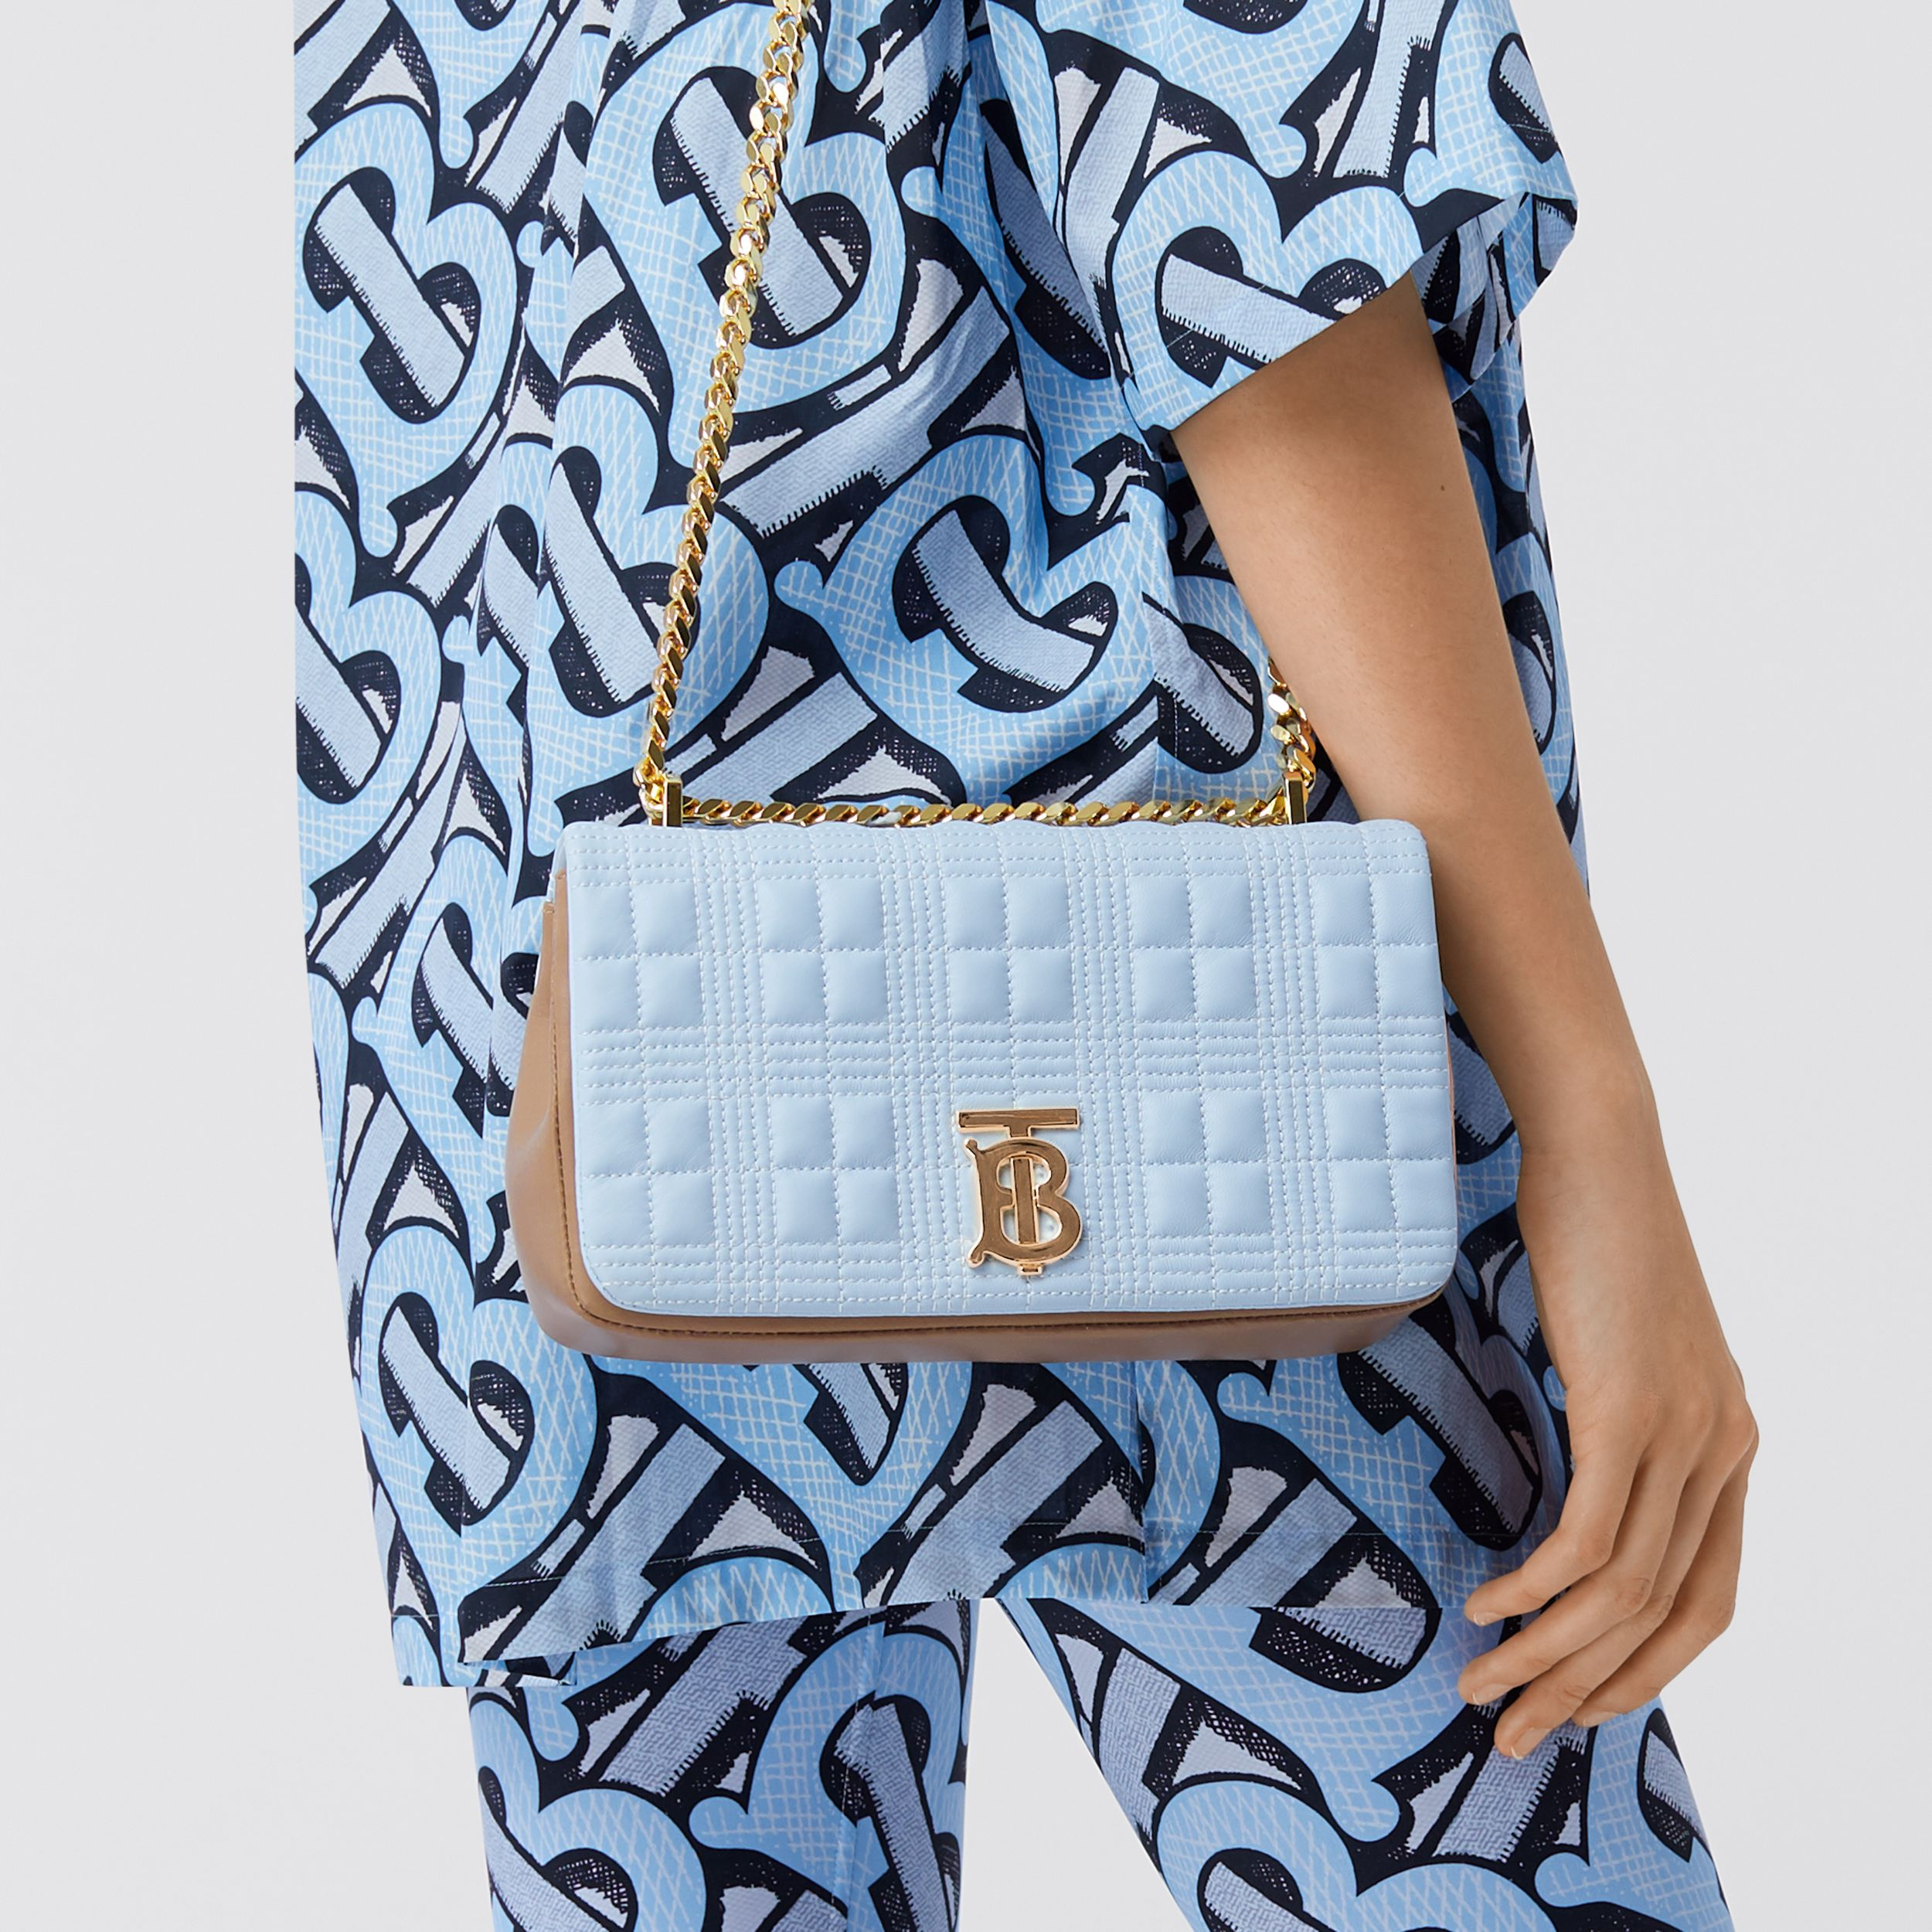 Small Quilted Tri-tone Lambskin Lola Bag in Pale Blue/camel/black - Women | Burberry United Kingdom - 3